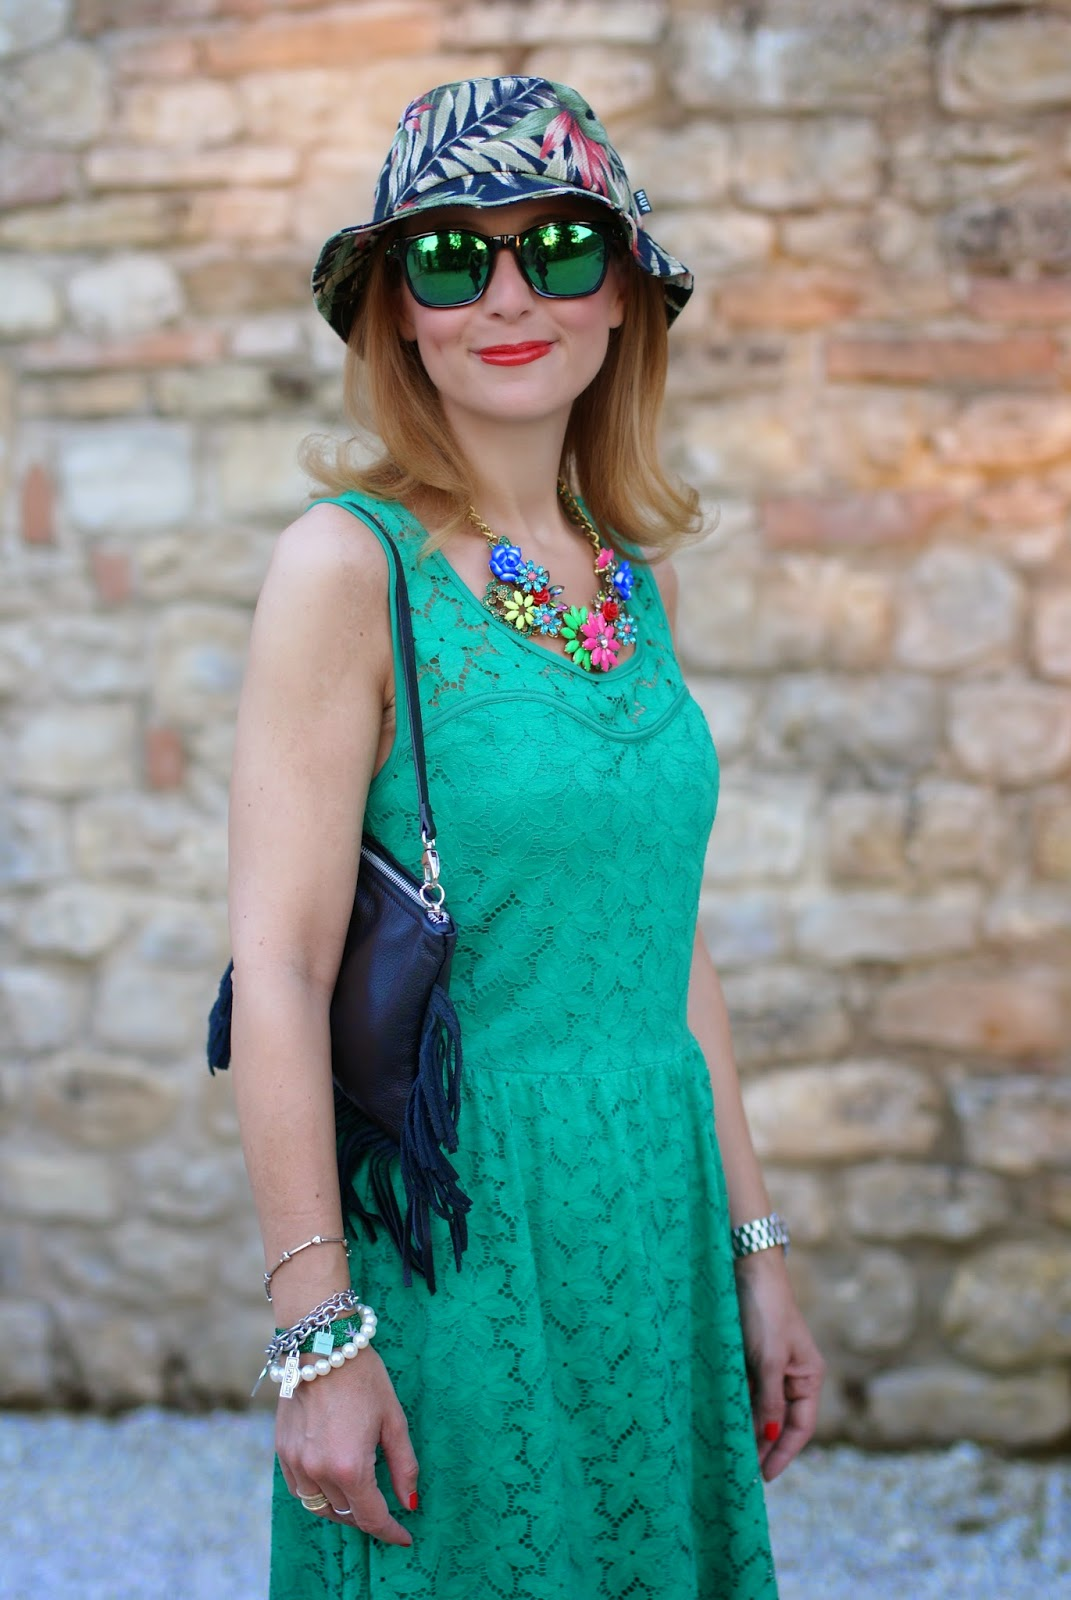 Morgan de toi lace dress, fringed bag, tropical bob hat, oakley green sunglasses, Fashion and Cookies, fashion blogger